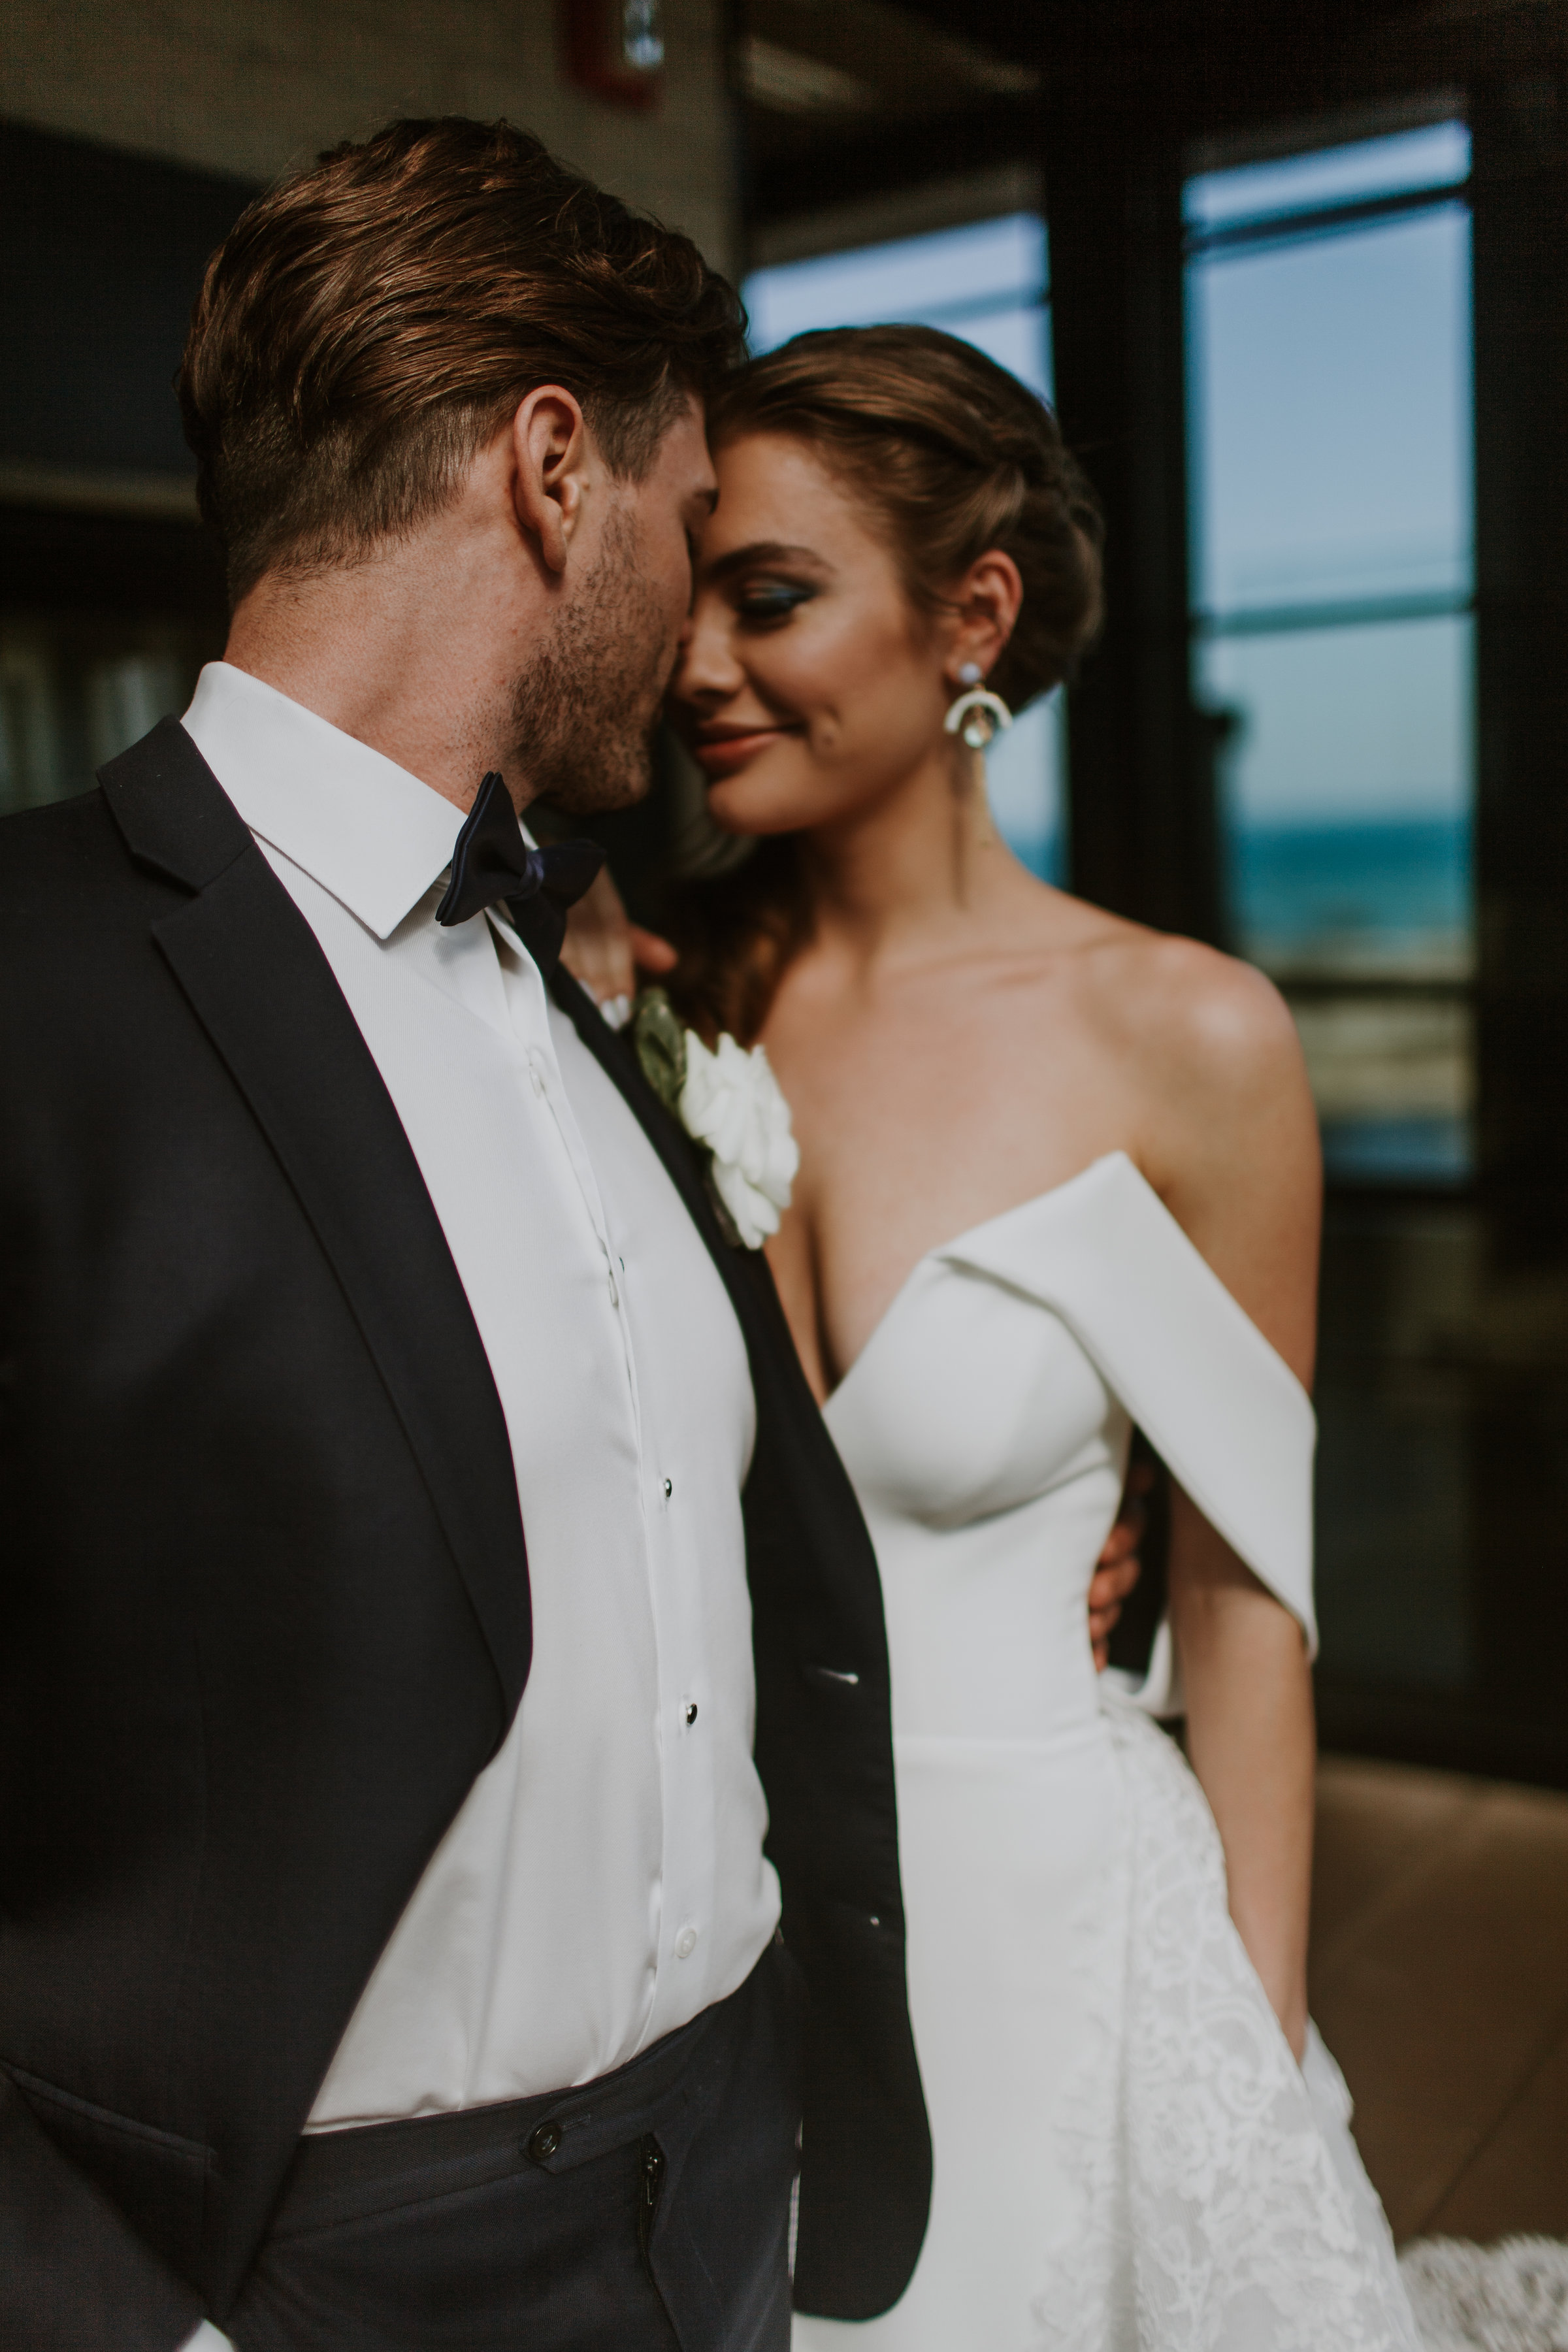 Bride and Groom Portrait Chicago Wedding Gabrielle Daylor Photography